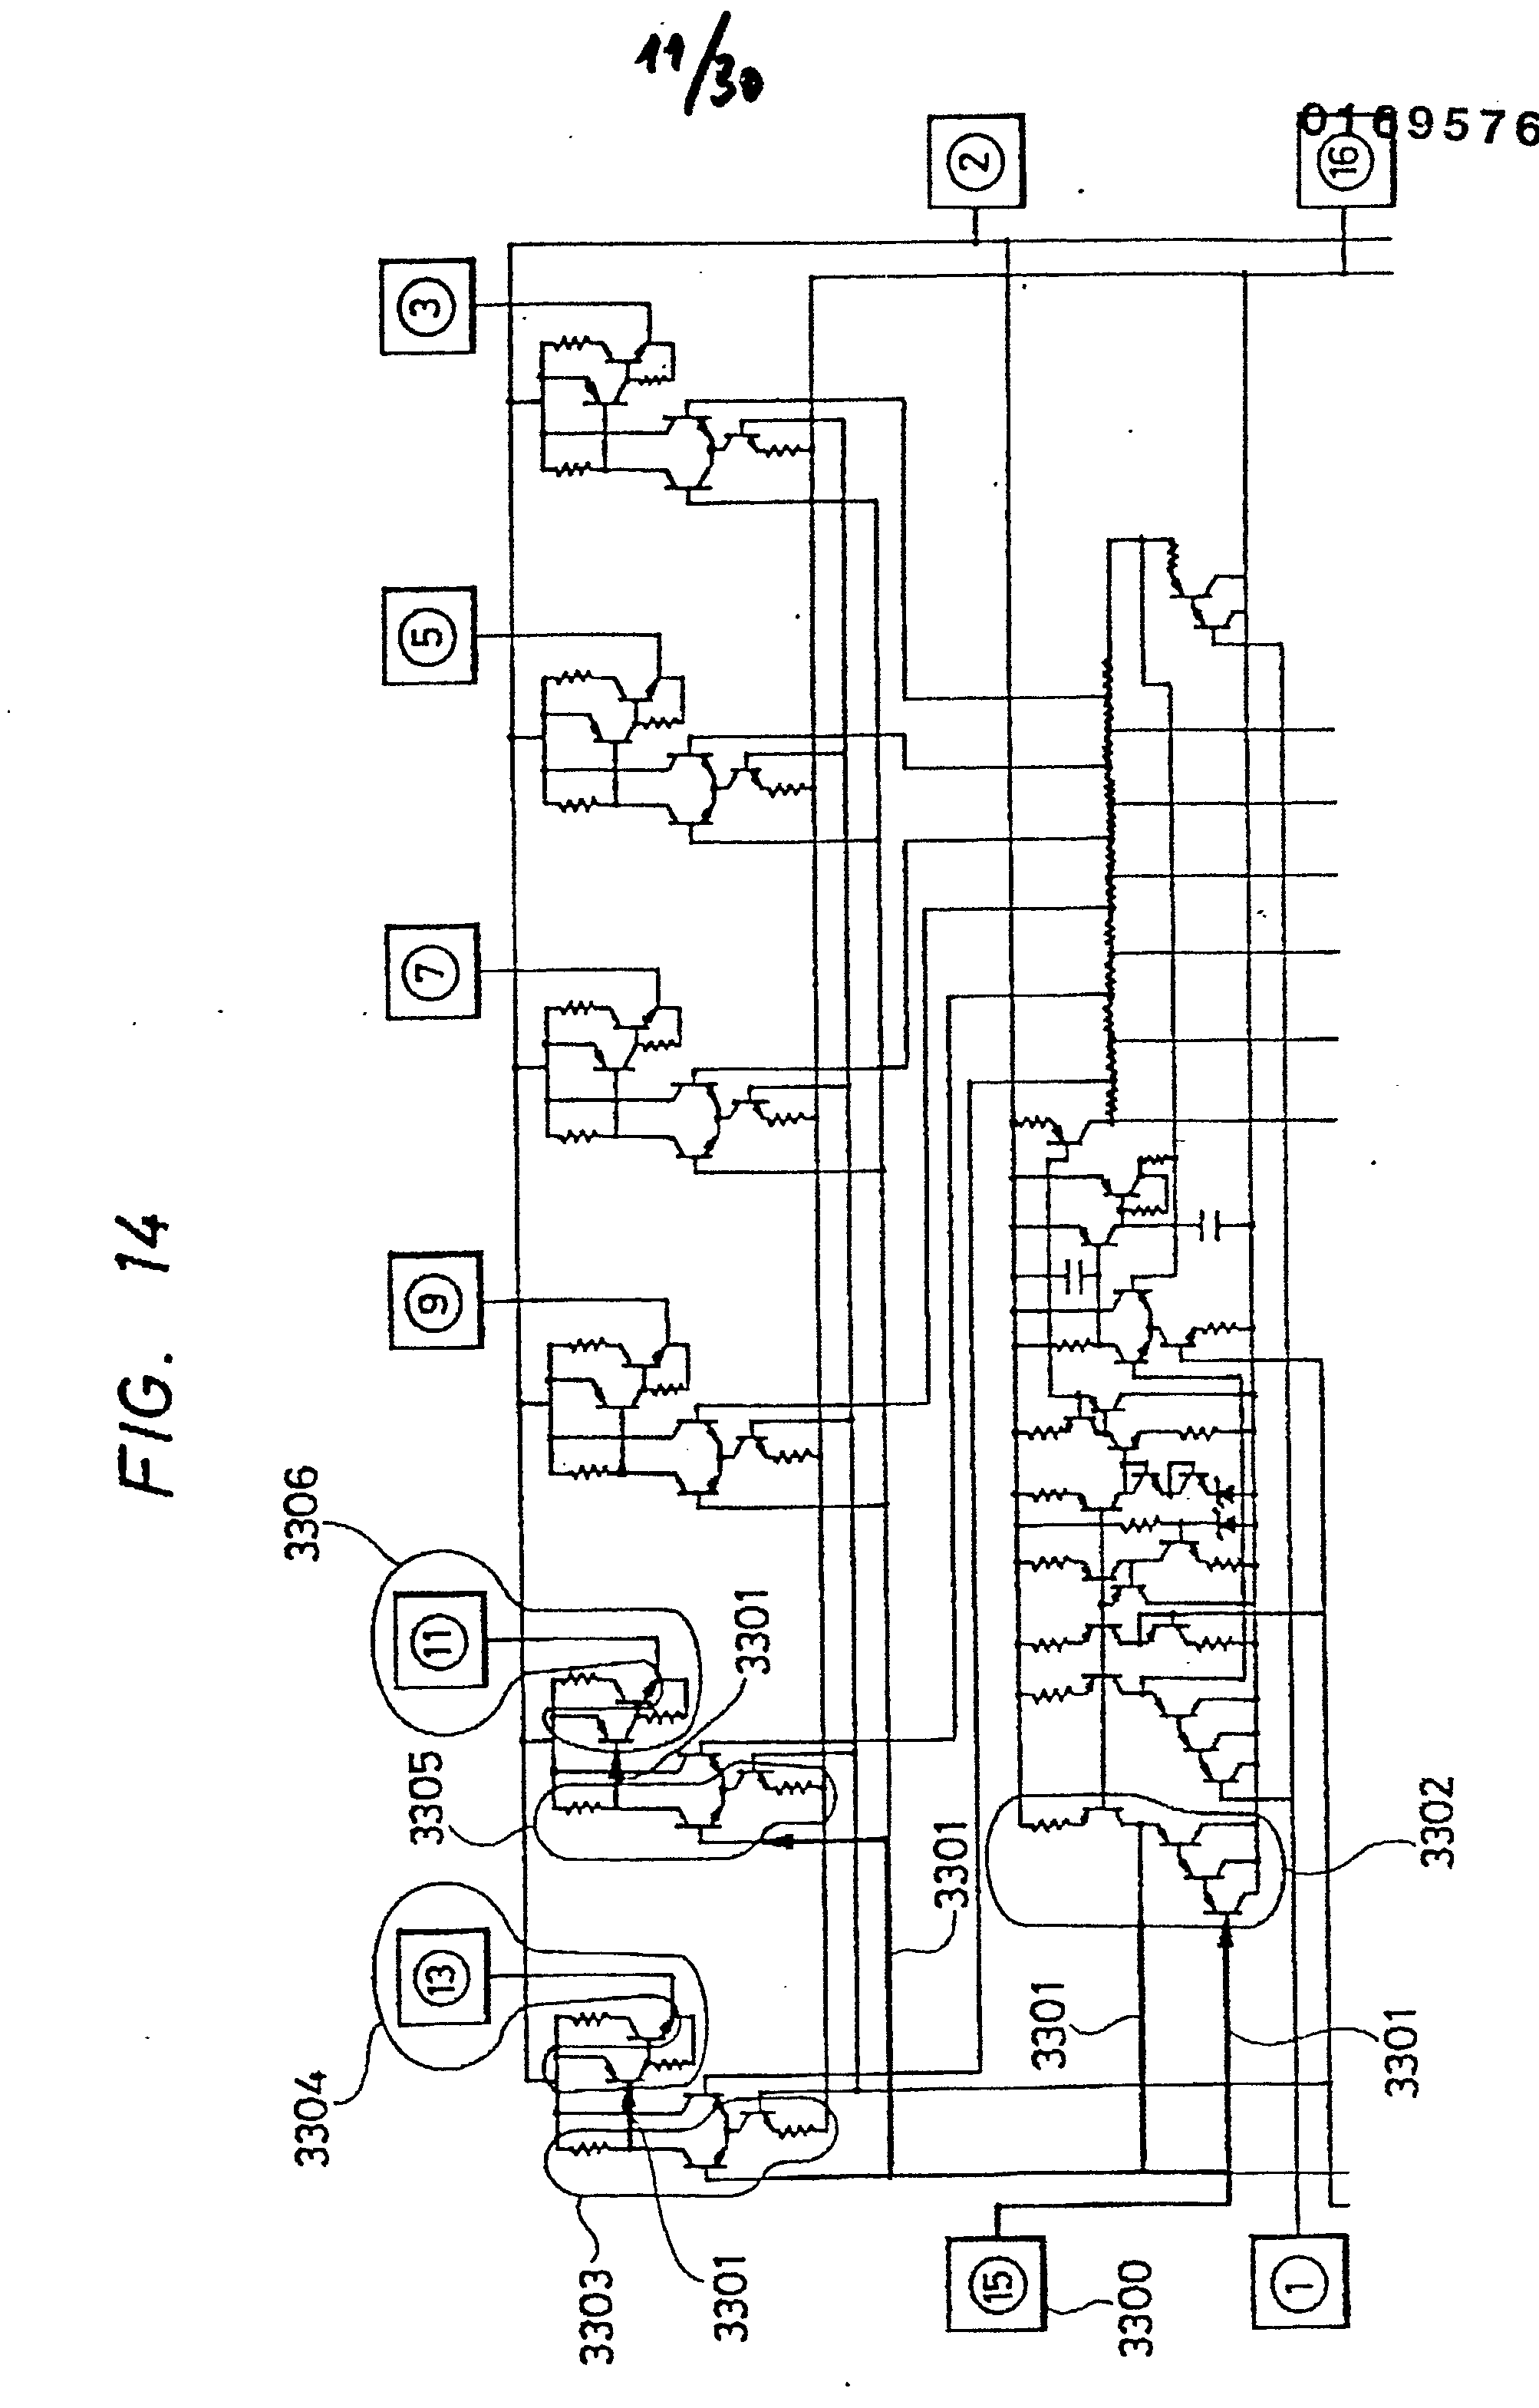 patent ep0169576a2 method and system of circuit pattern patent drawing